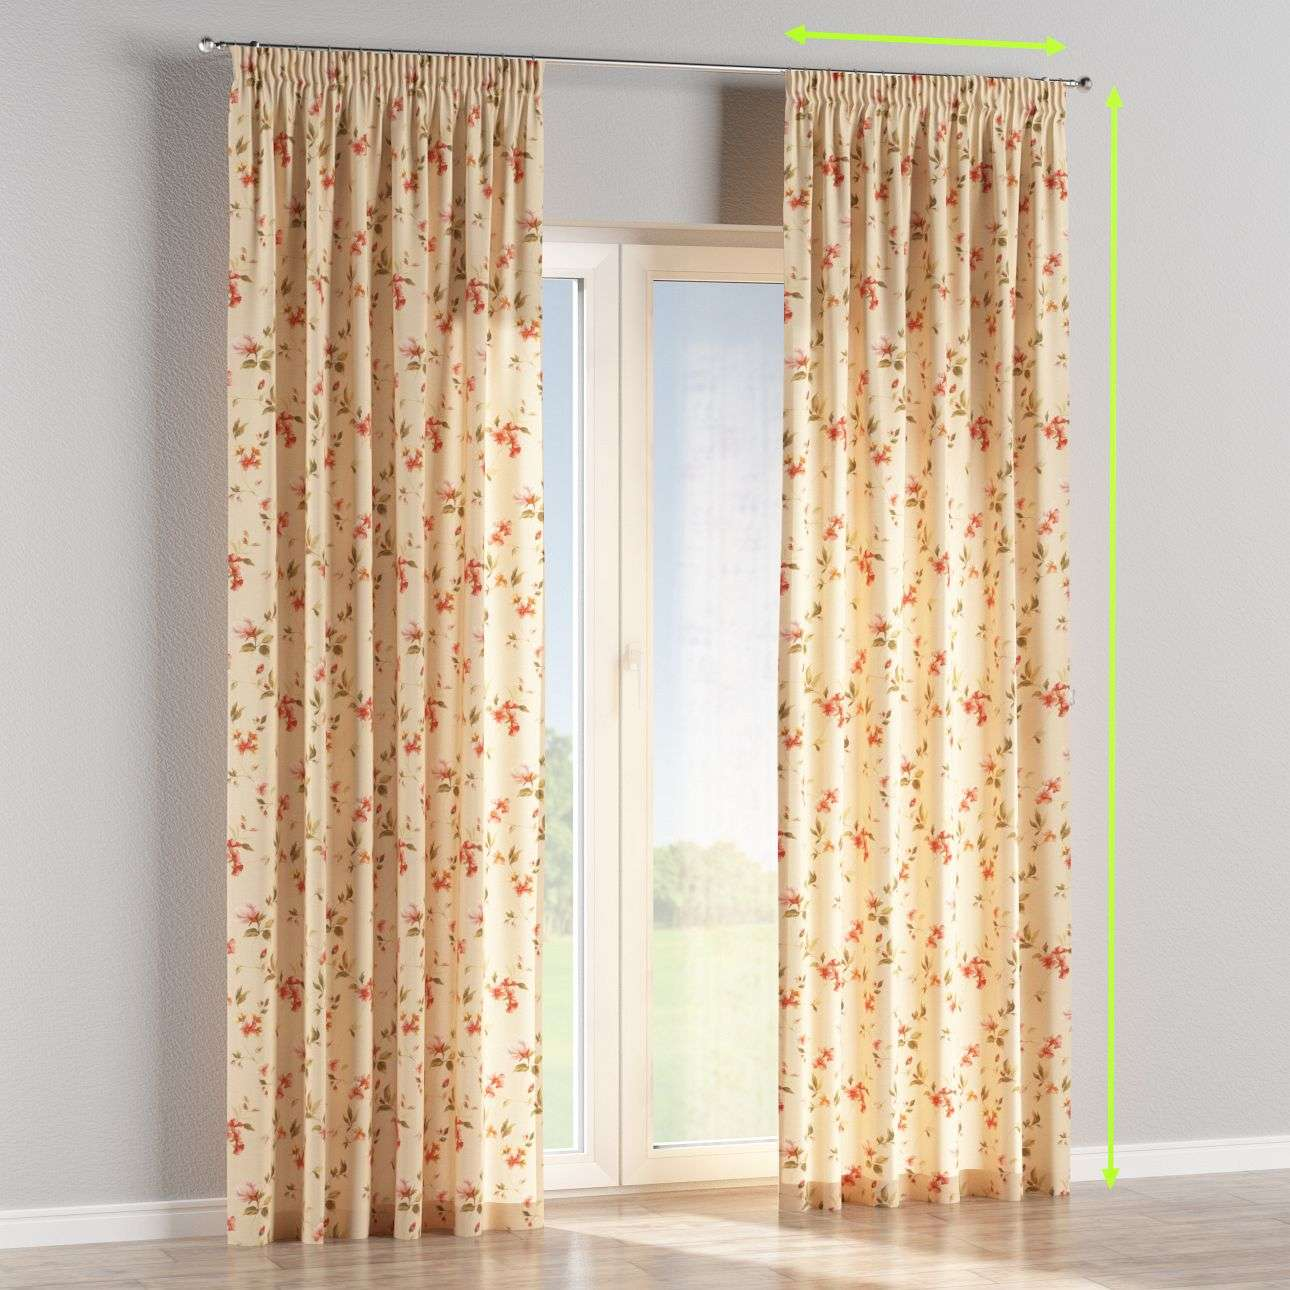 Pencil pleat lined curtains in collection Londres, fabric: 124-05